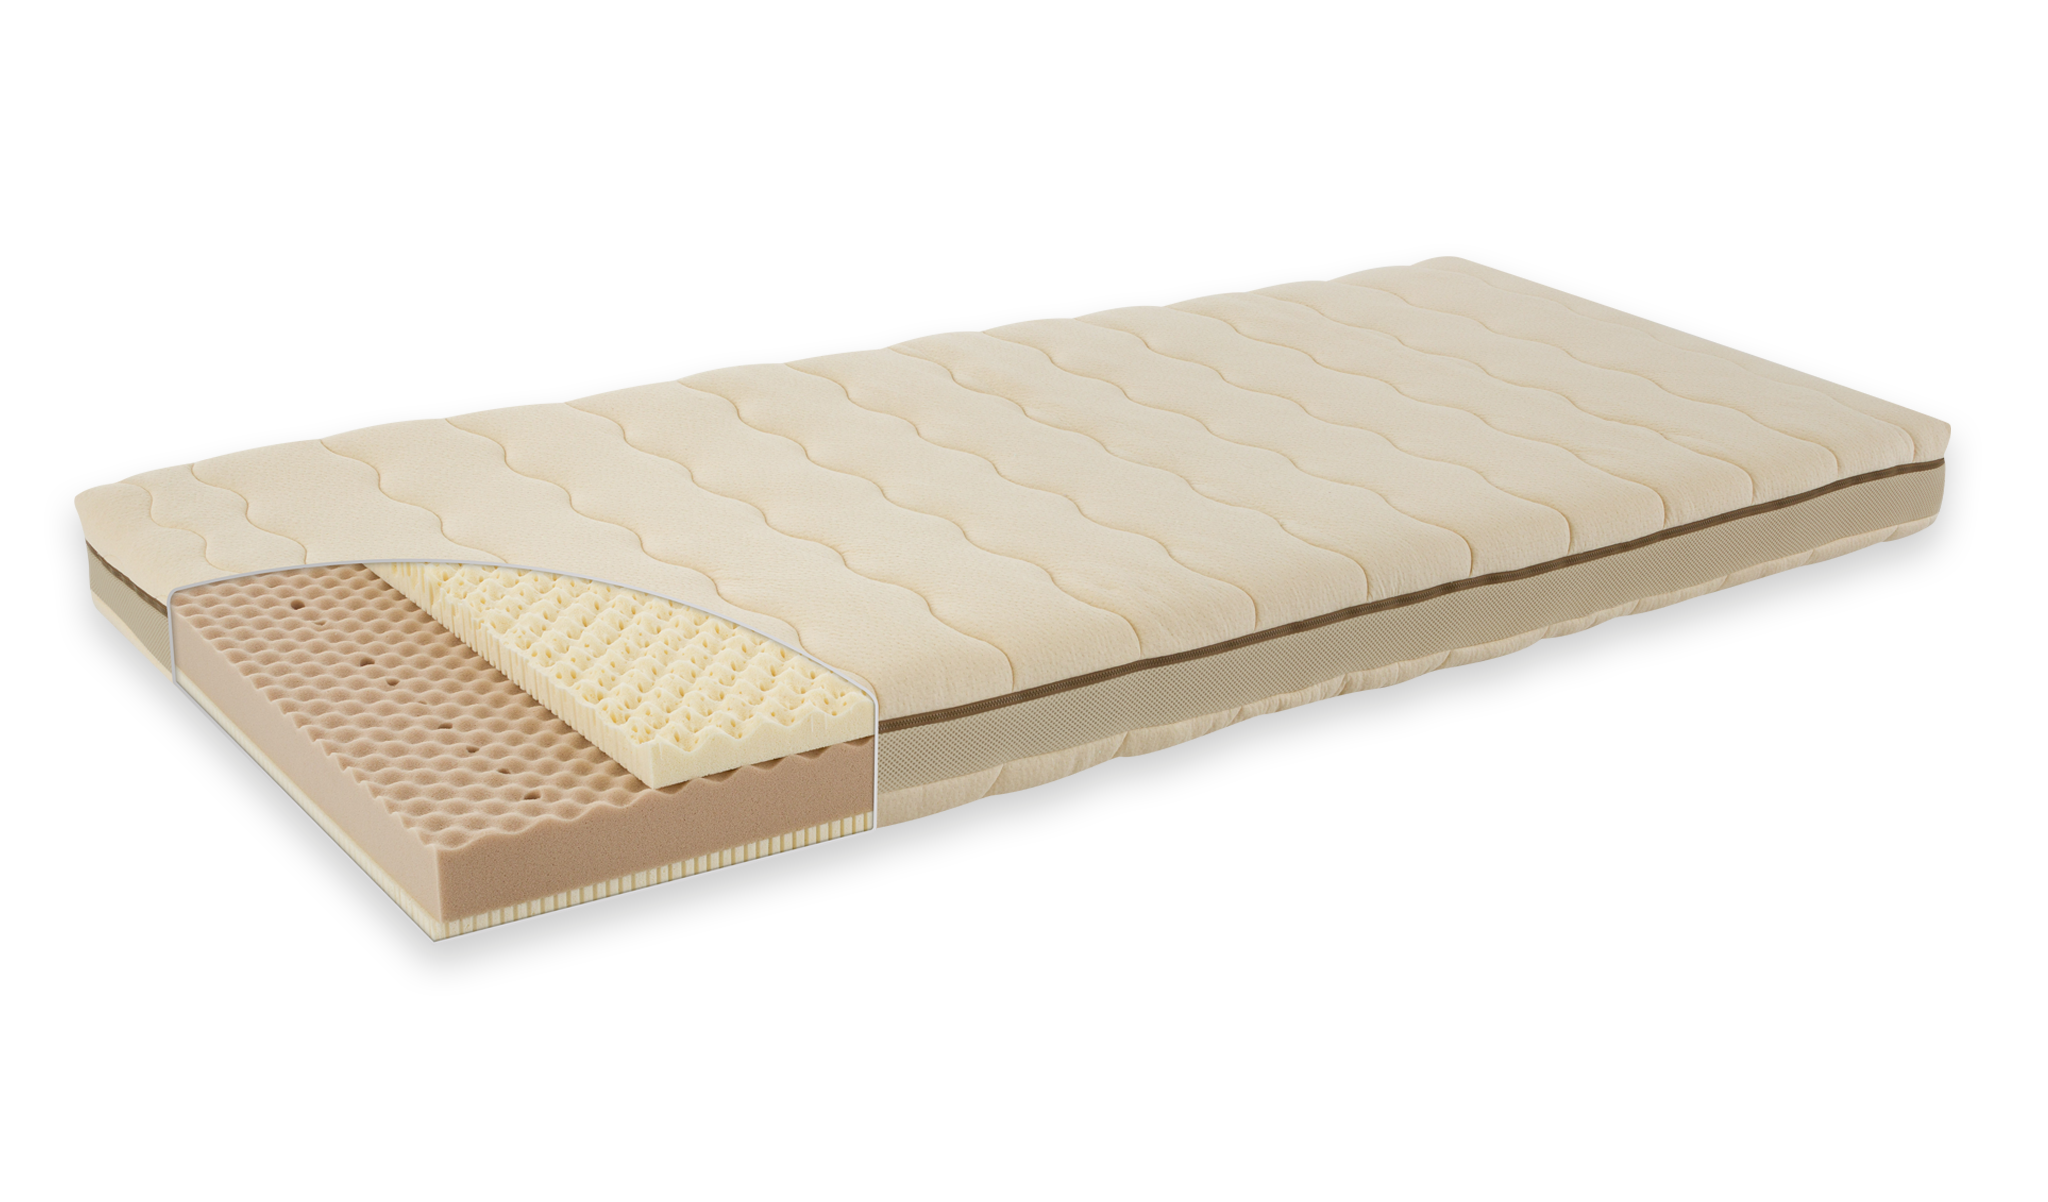 T080275 - mattress nature star